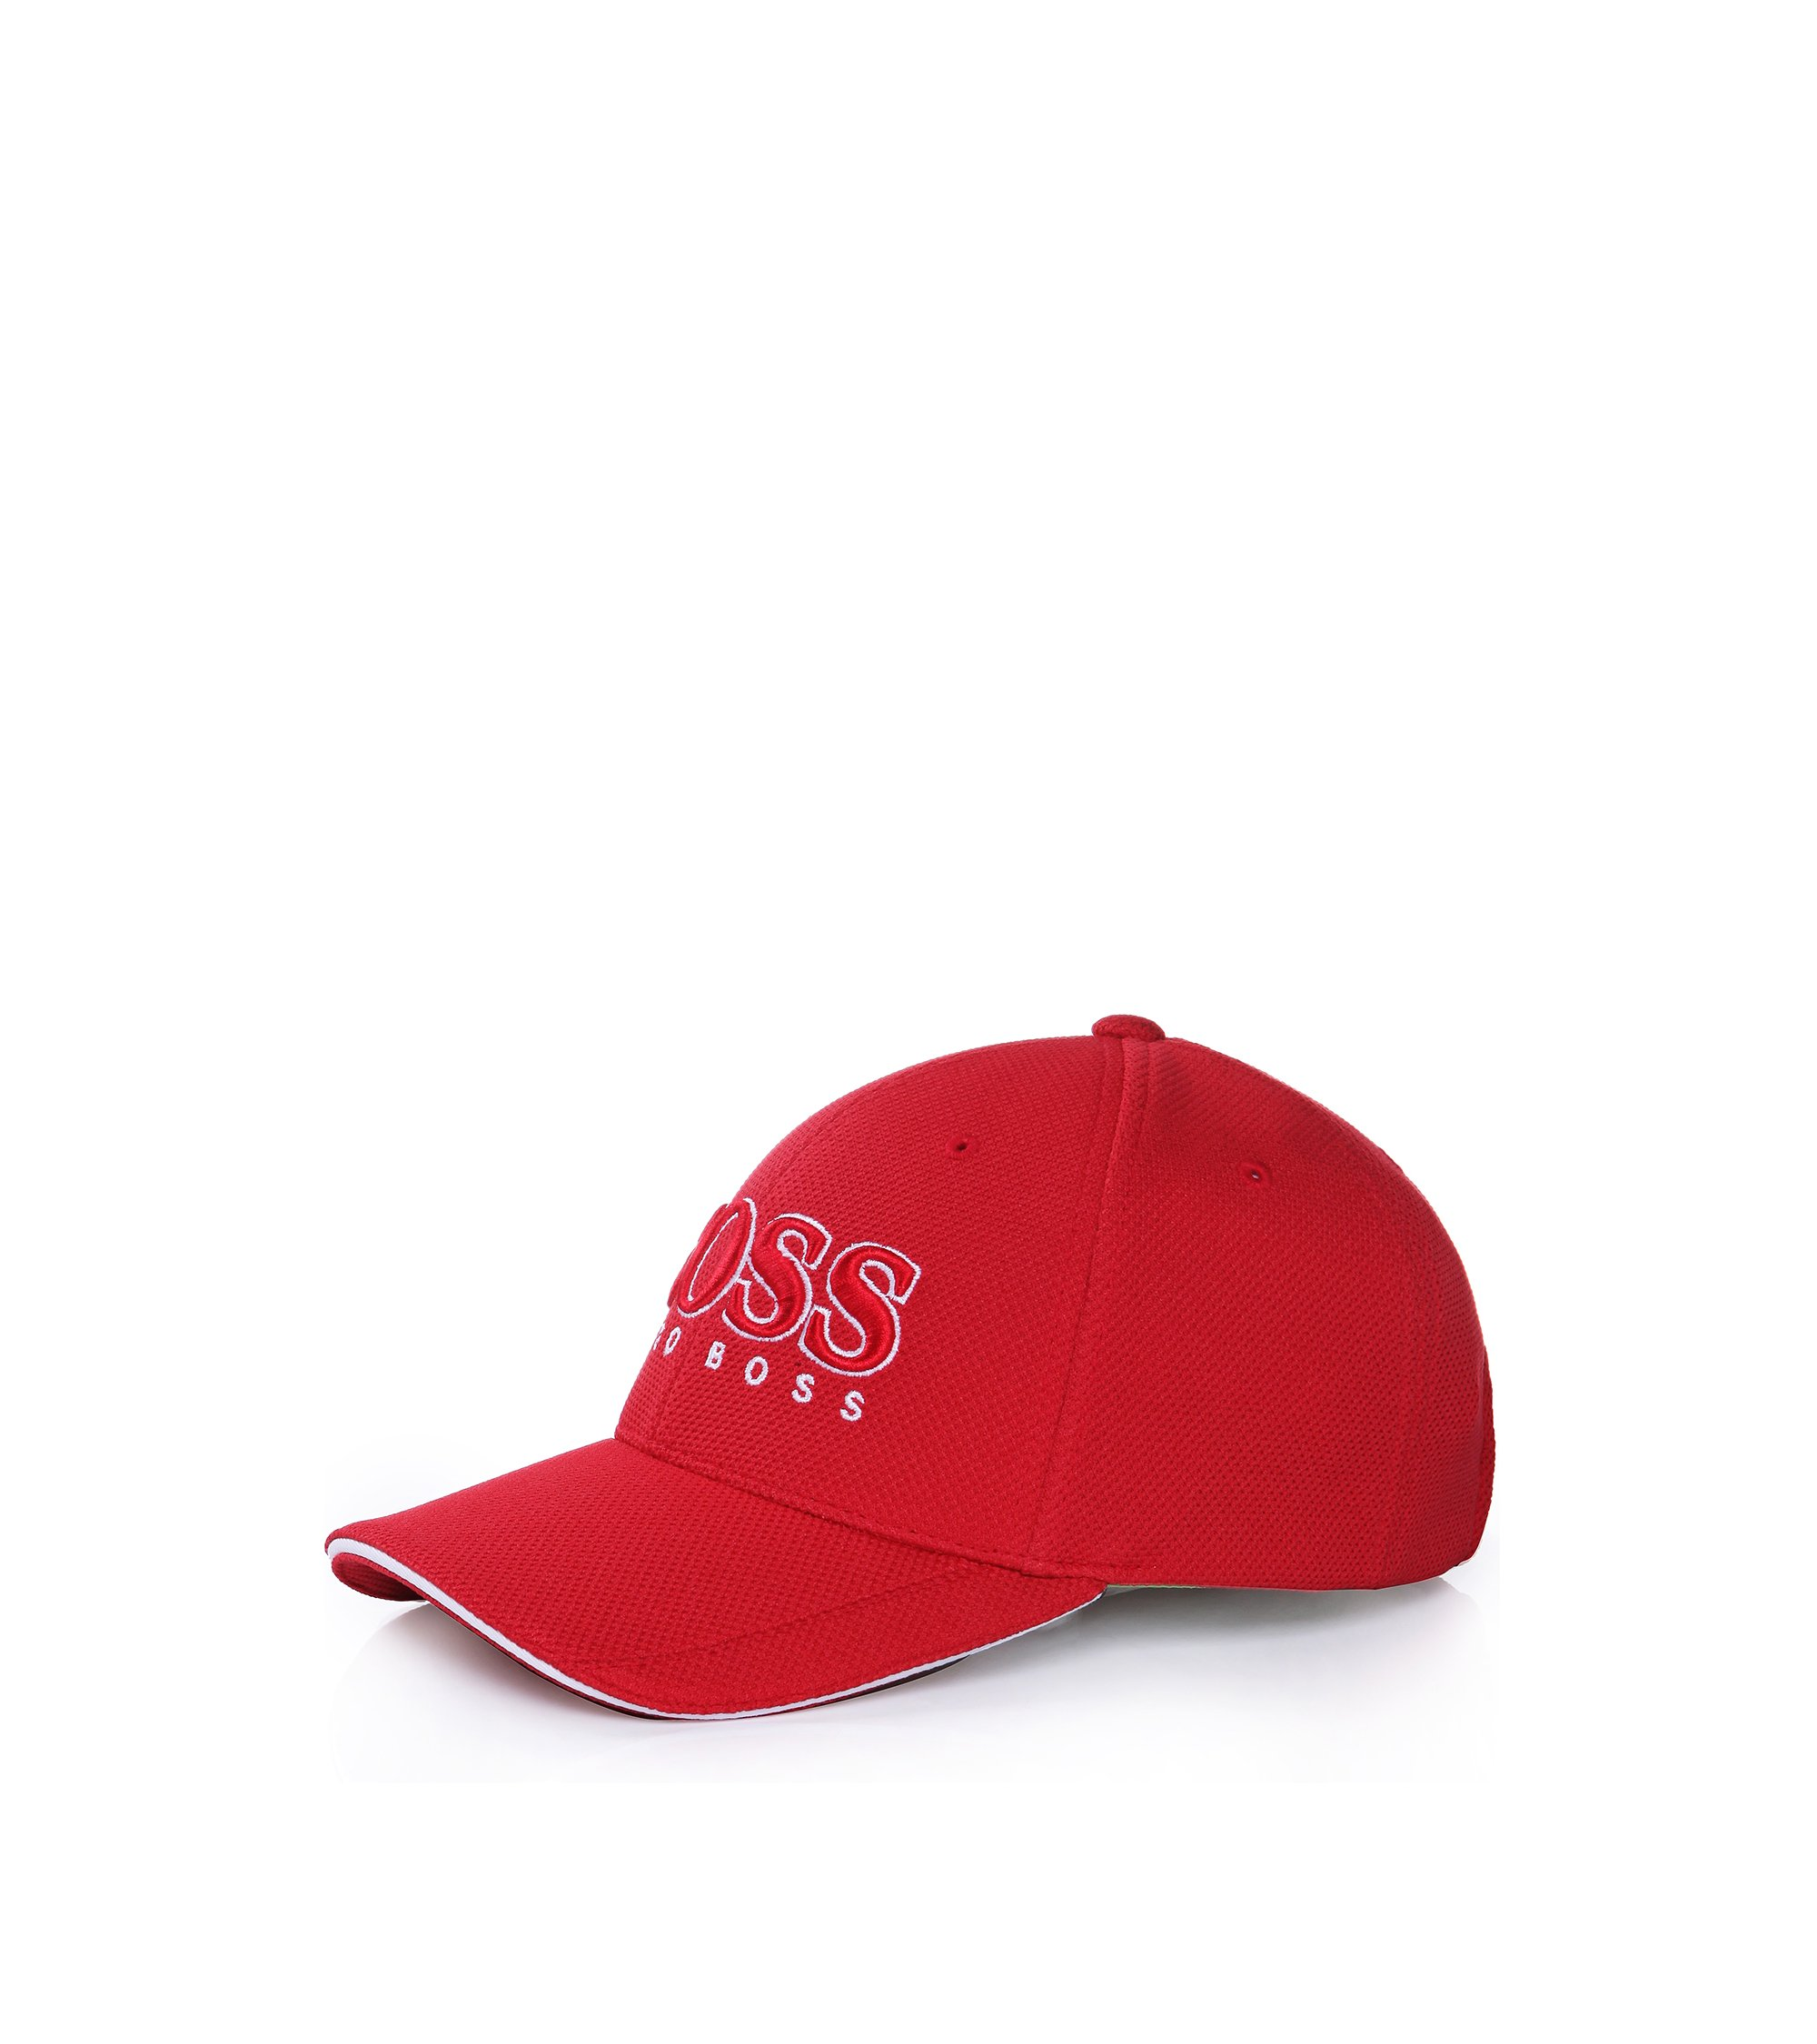 3-D Logo Performance Hat | Cap US, Red